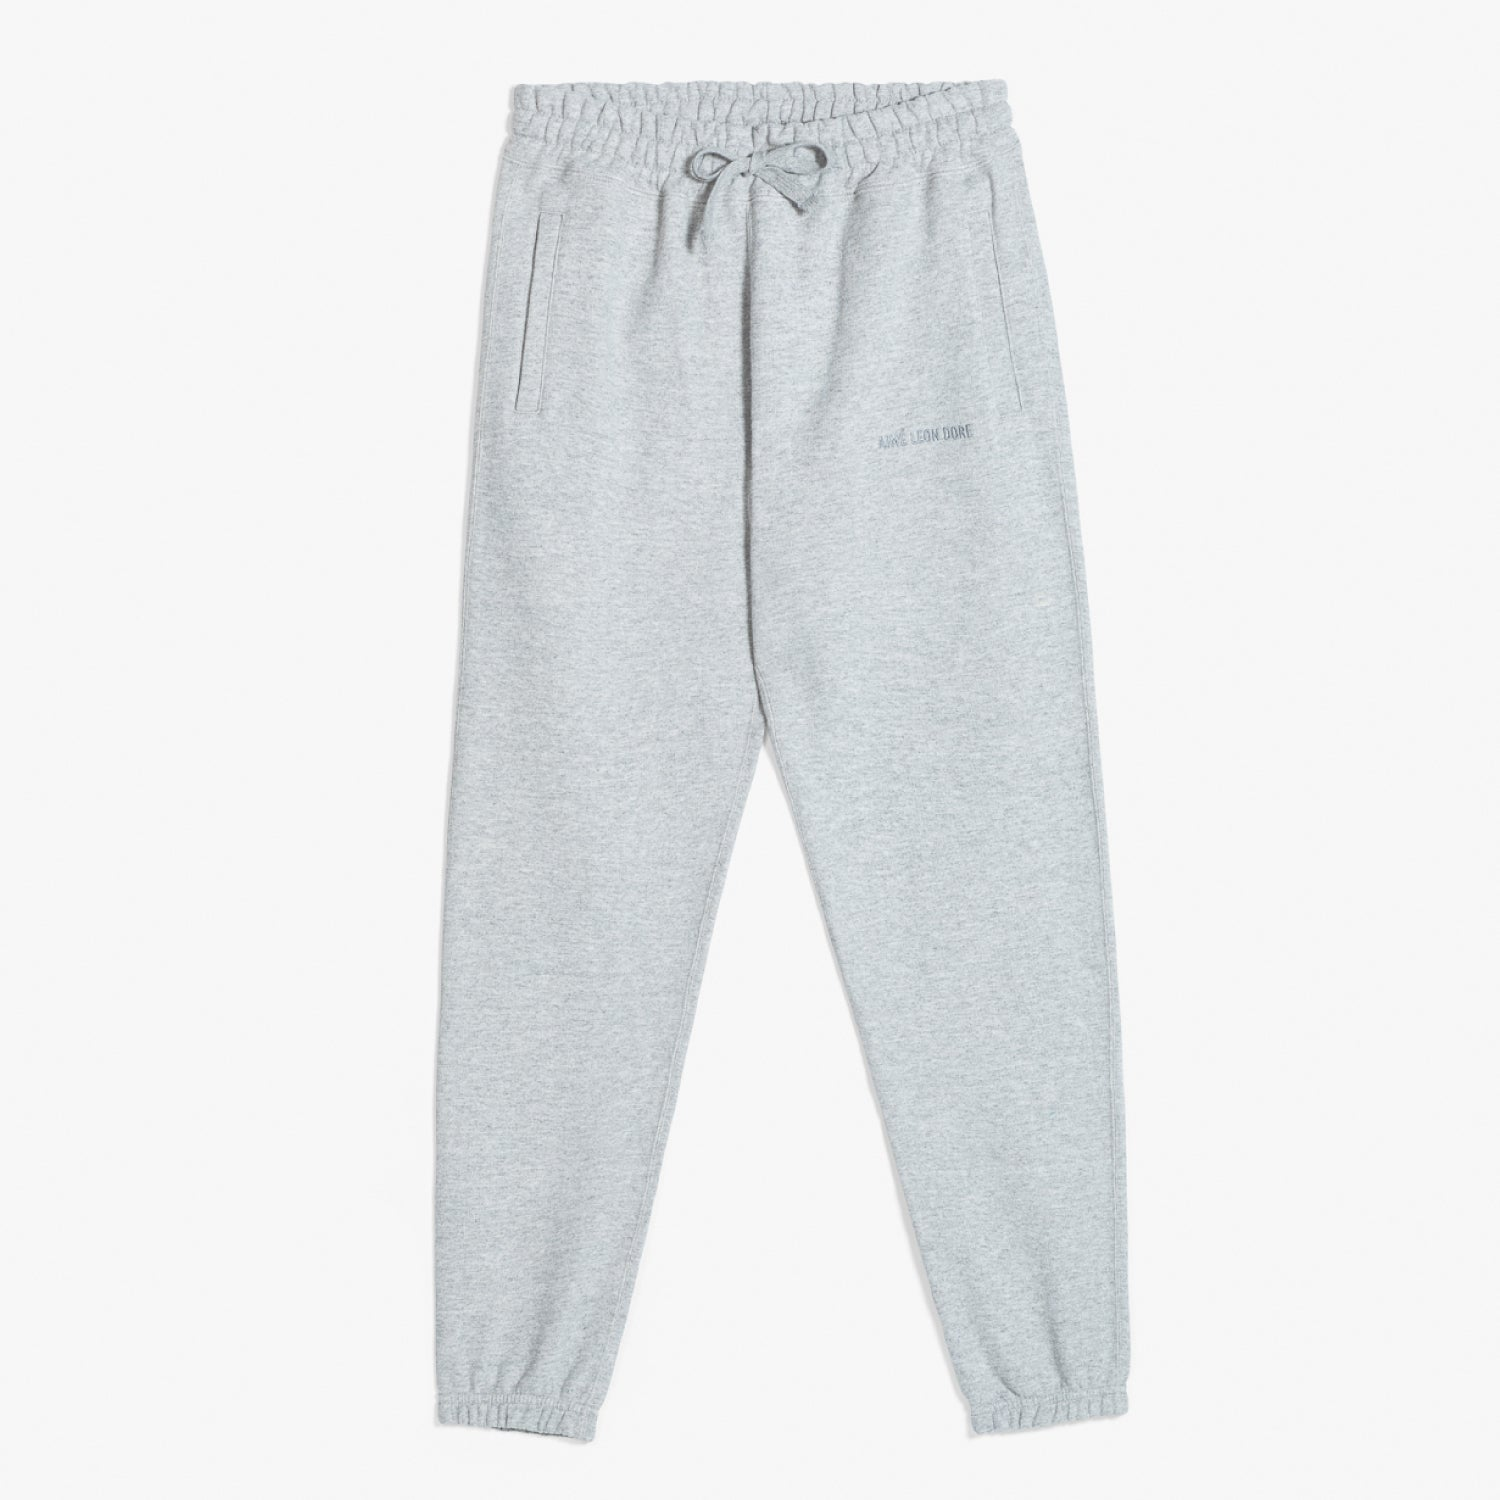 FRENCH TERRY SWEAT PANTS - GREY